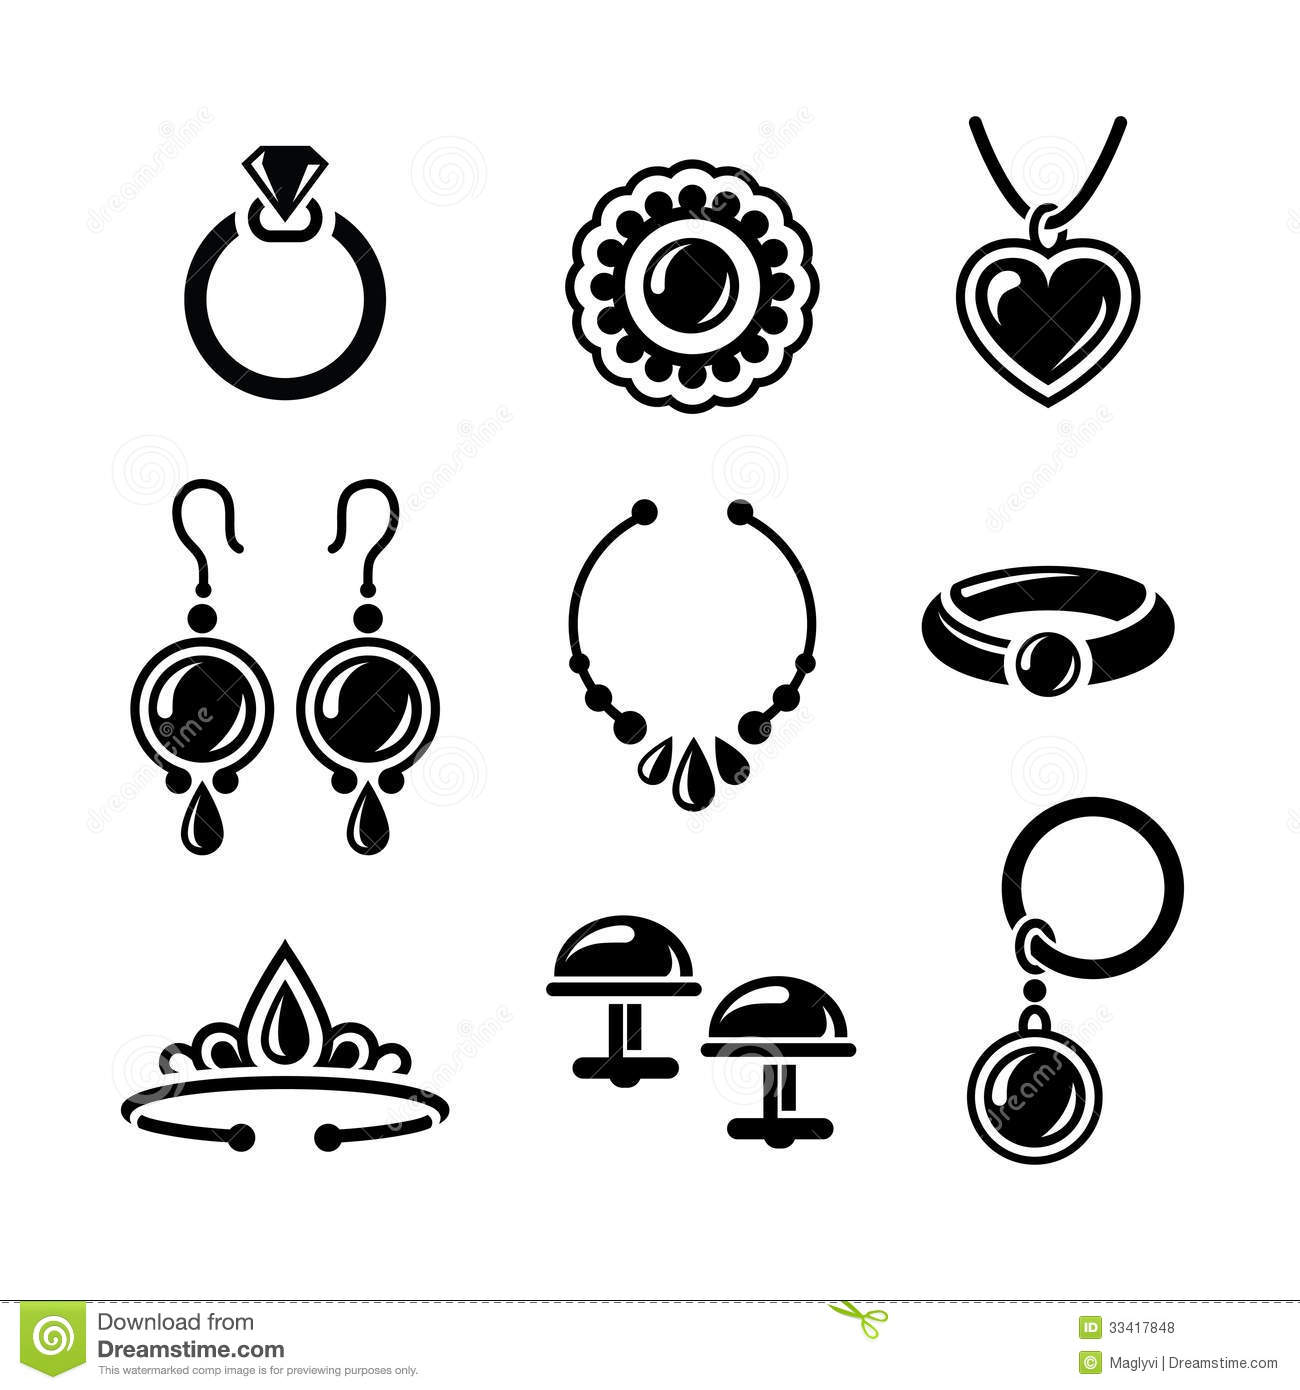 jewelry clip art free download clipart panda free clipart images rh clipartpanda com free clipart jewelry box free jewelry clipart downloads